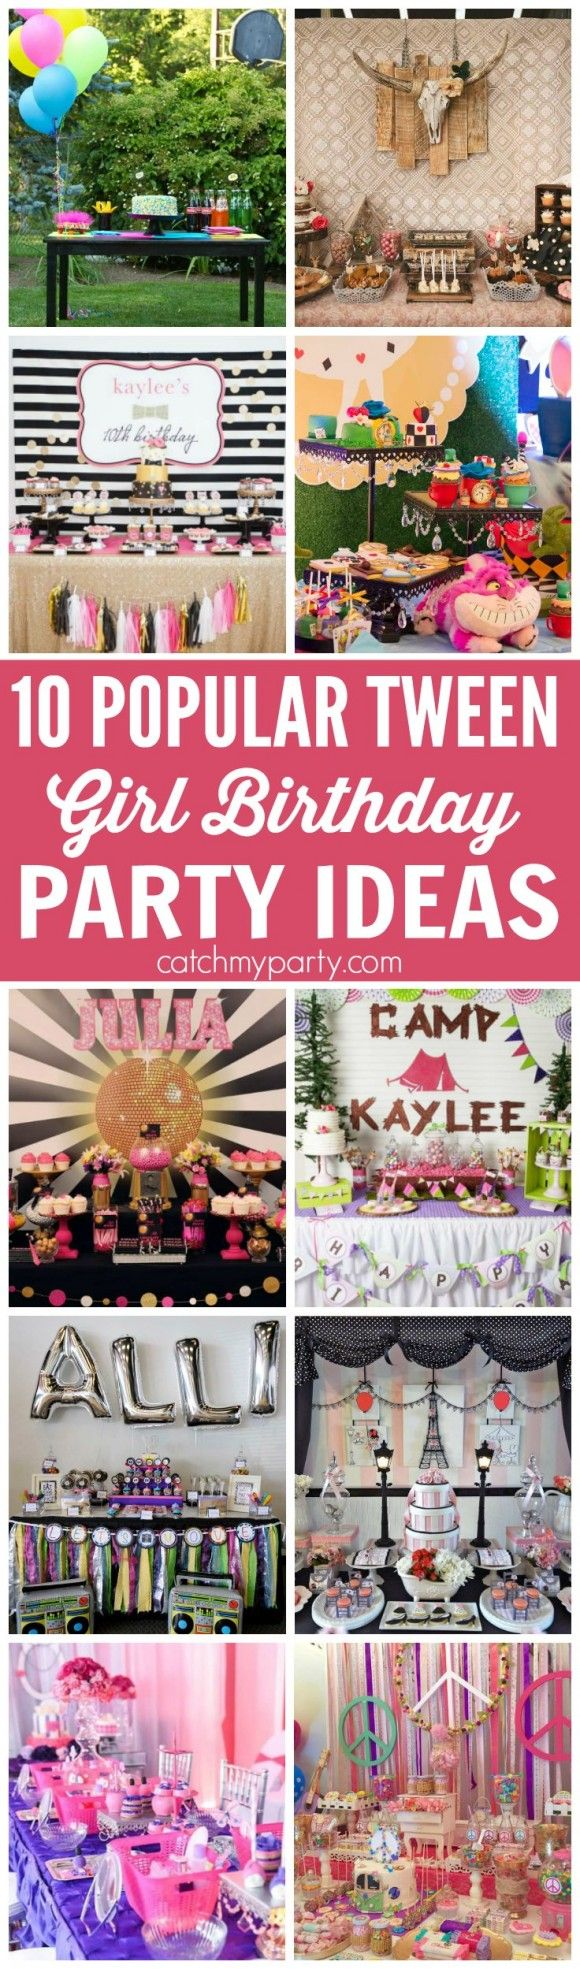 10 of the Most Popular Tween Girl Birthday Party Ideas -- includes retro ideas, glam ideas and fairytale ideas! | CatchMyParty.com